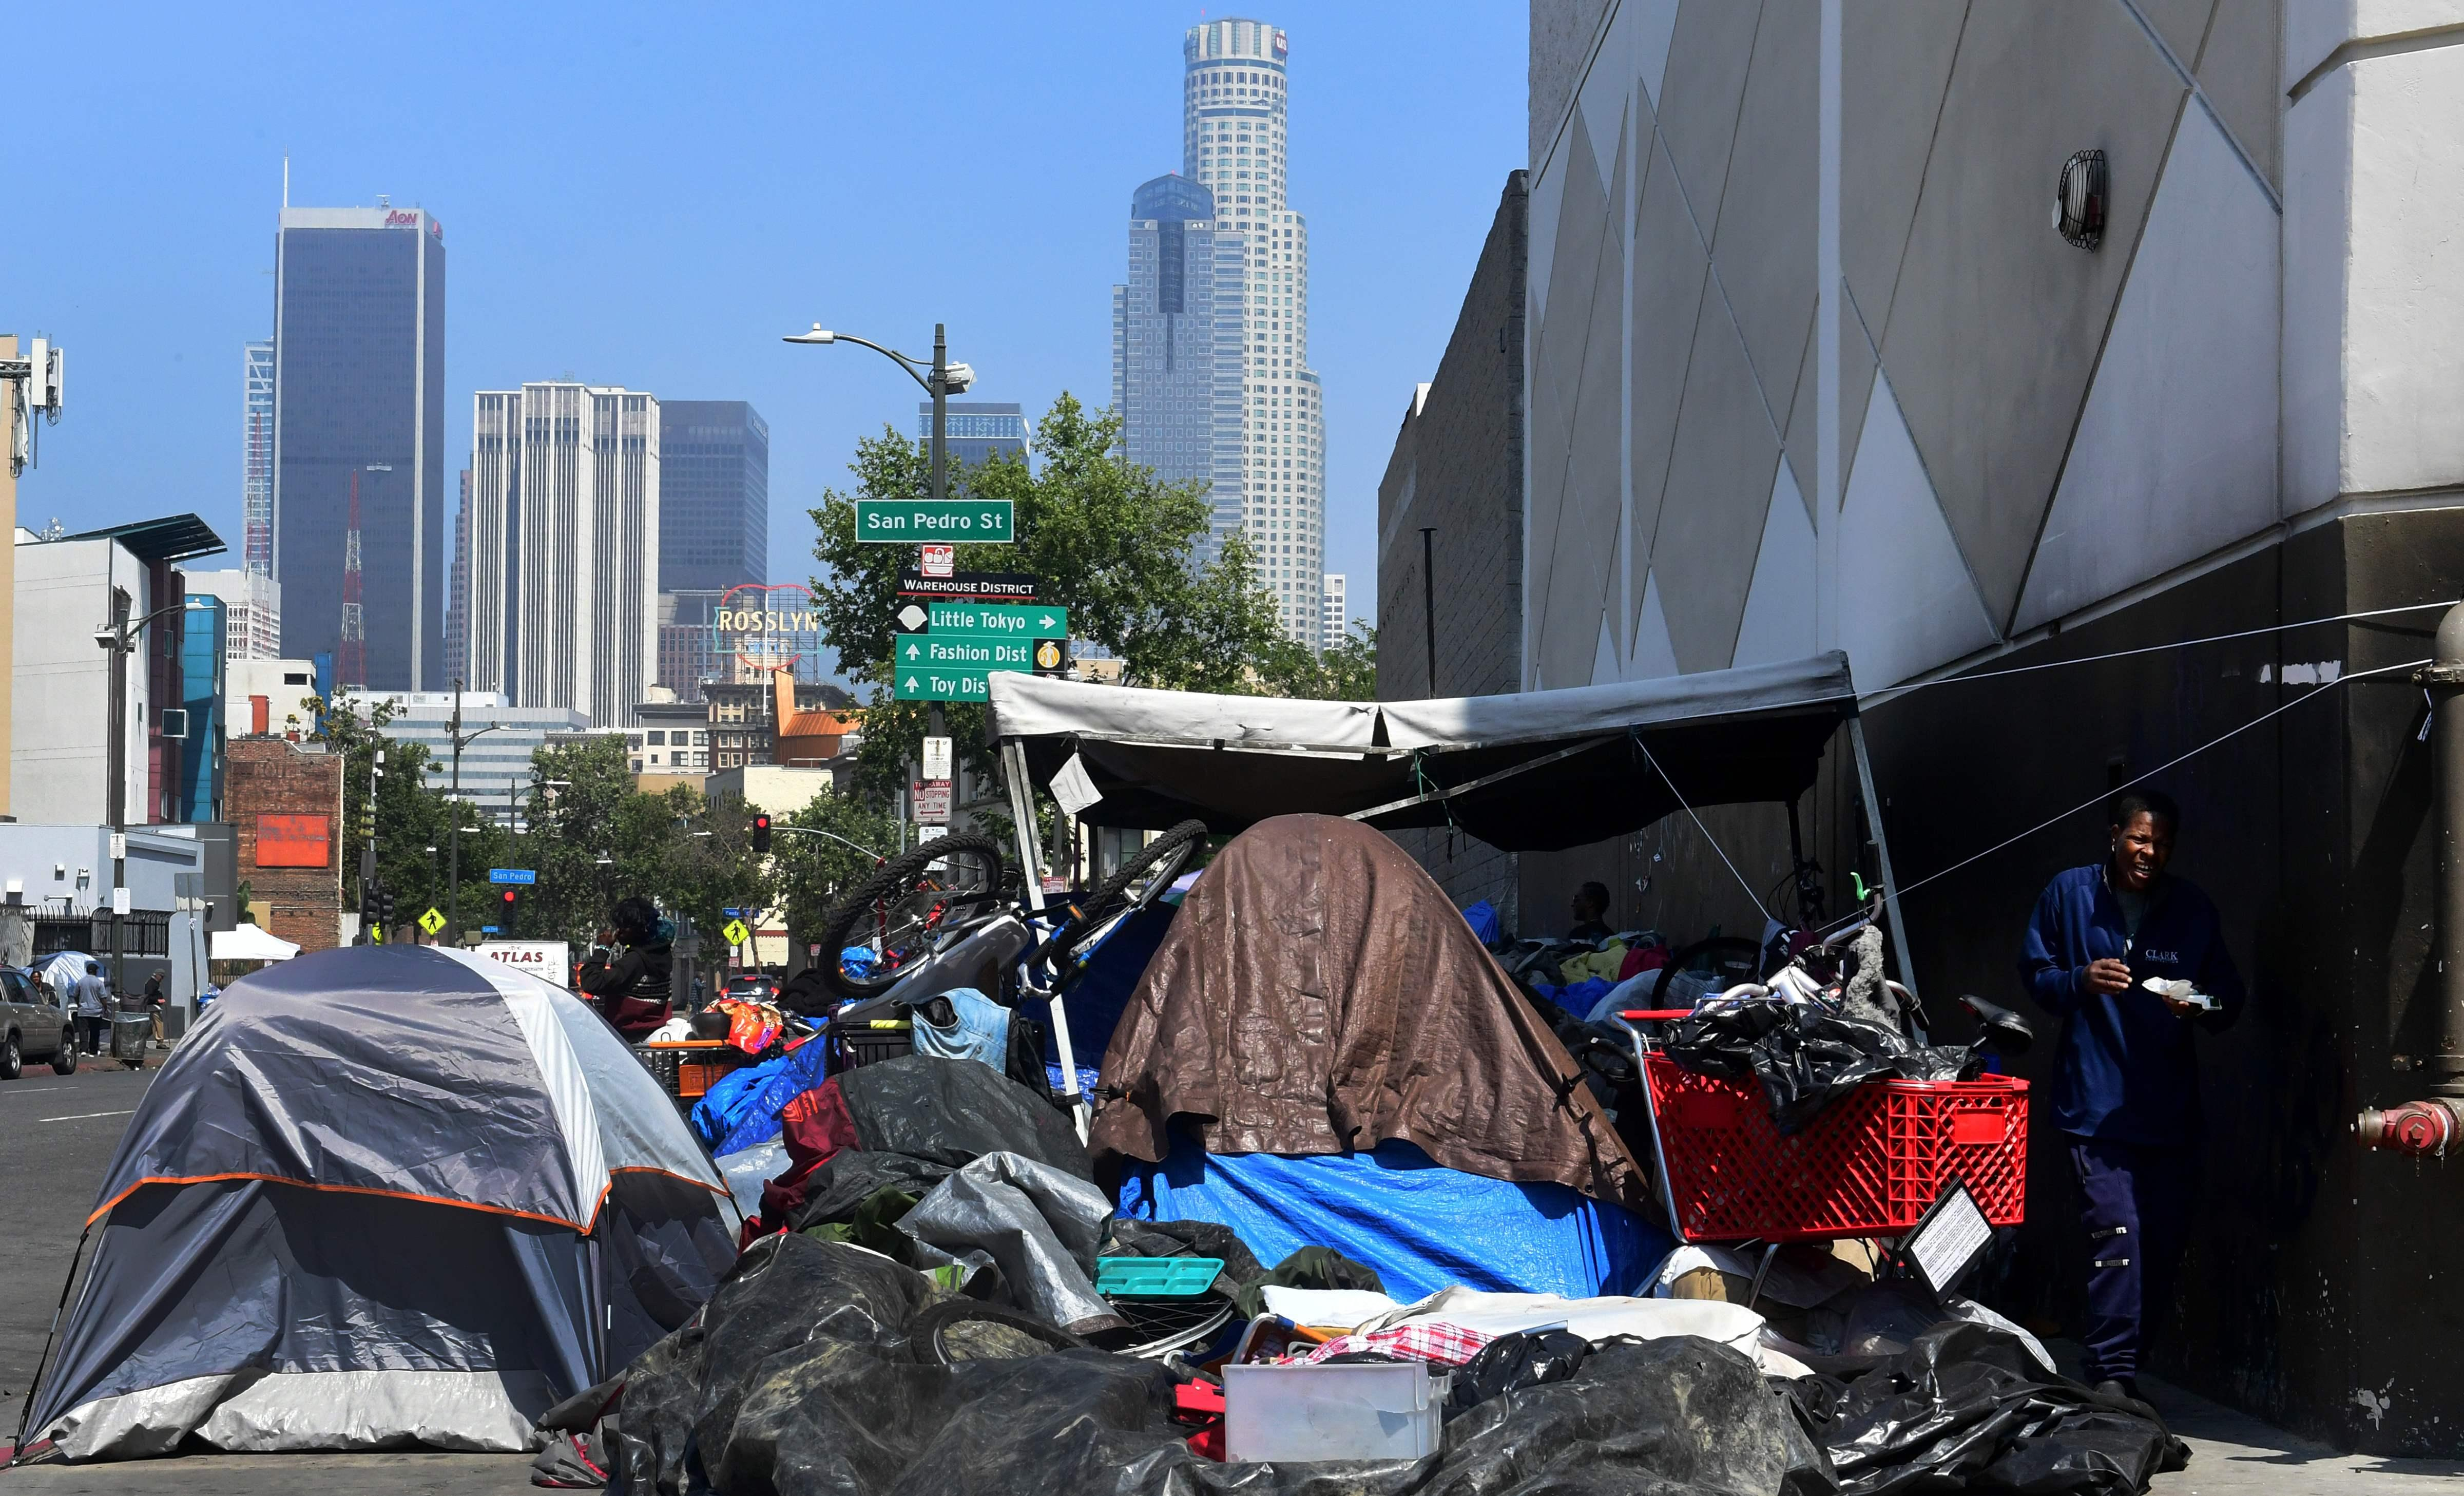 Bug infestations, tent-lined streets: California's homelessness crisis is at a tipping point. Will a $12B plan put a dent in it?